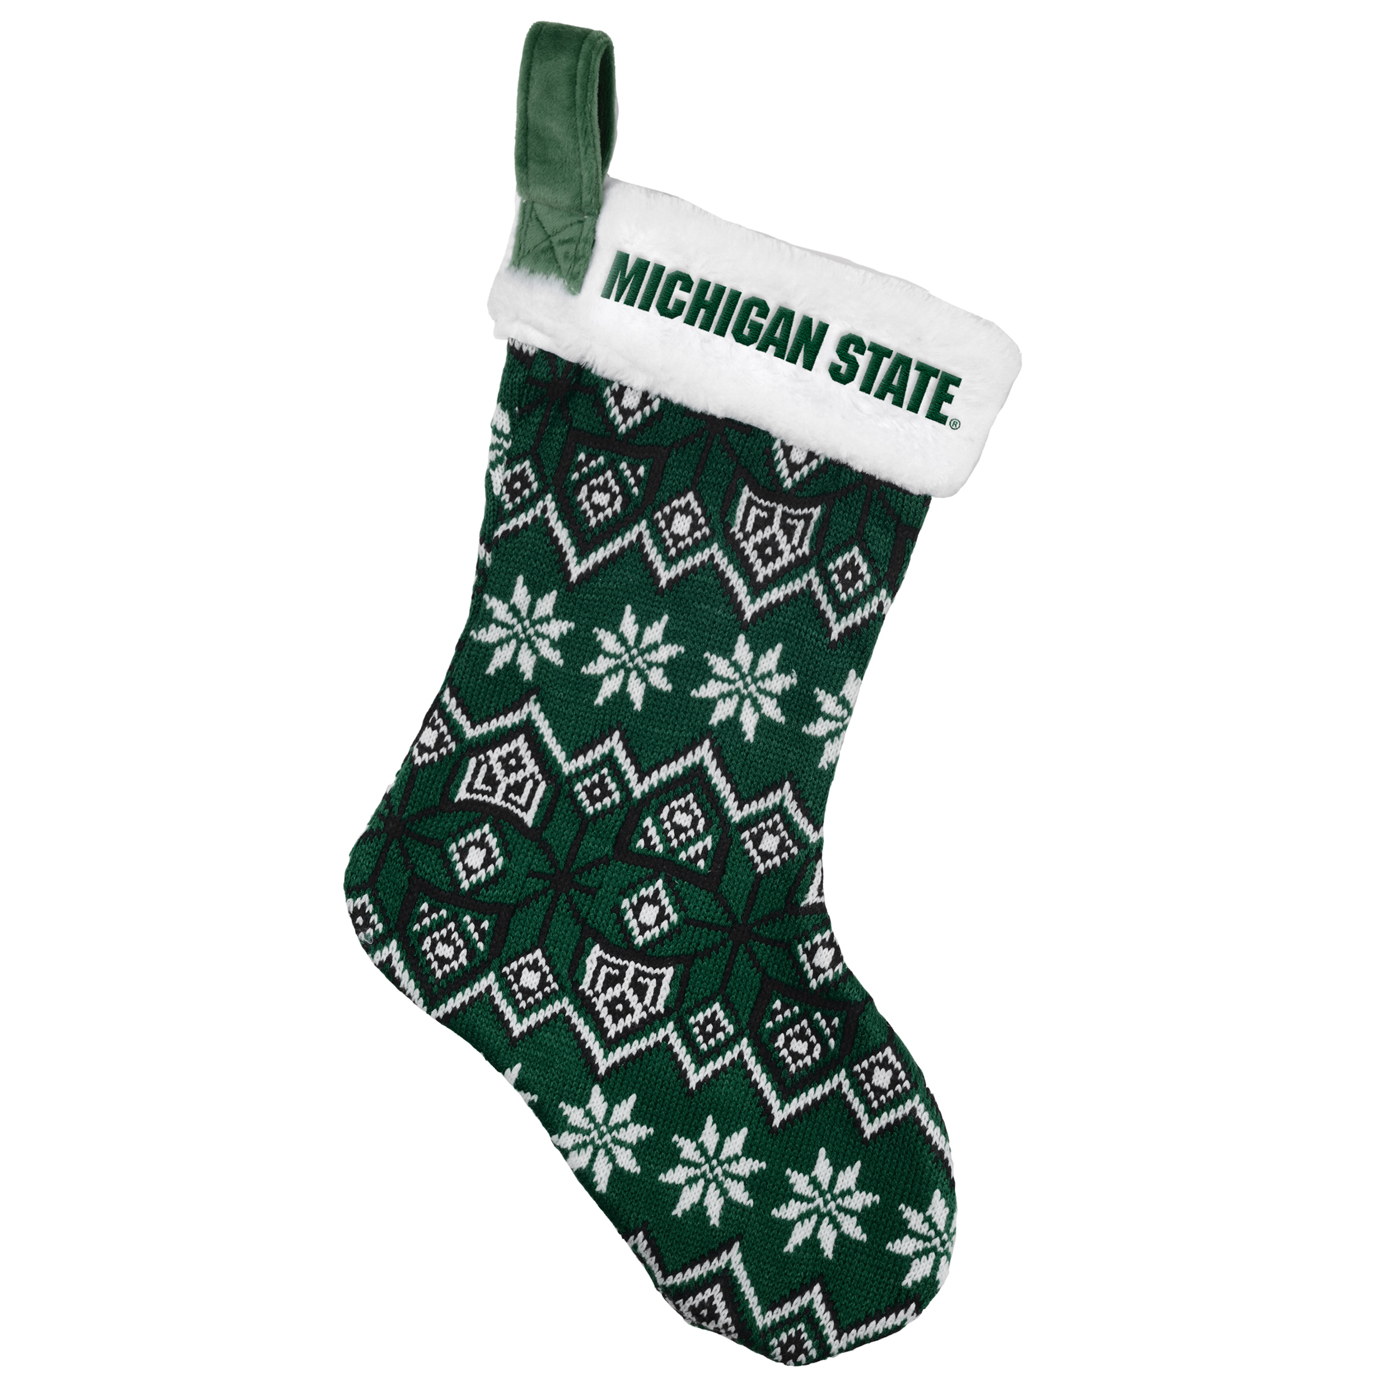 Michigan State Spartans Knit Christmas Stocking